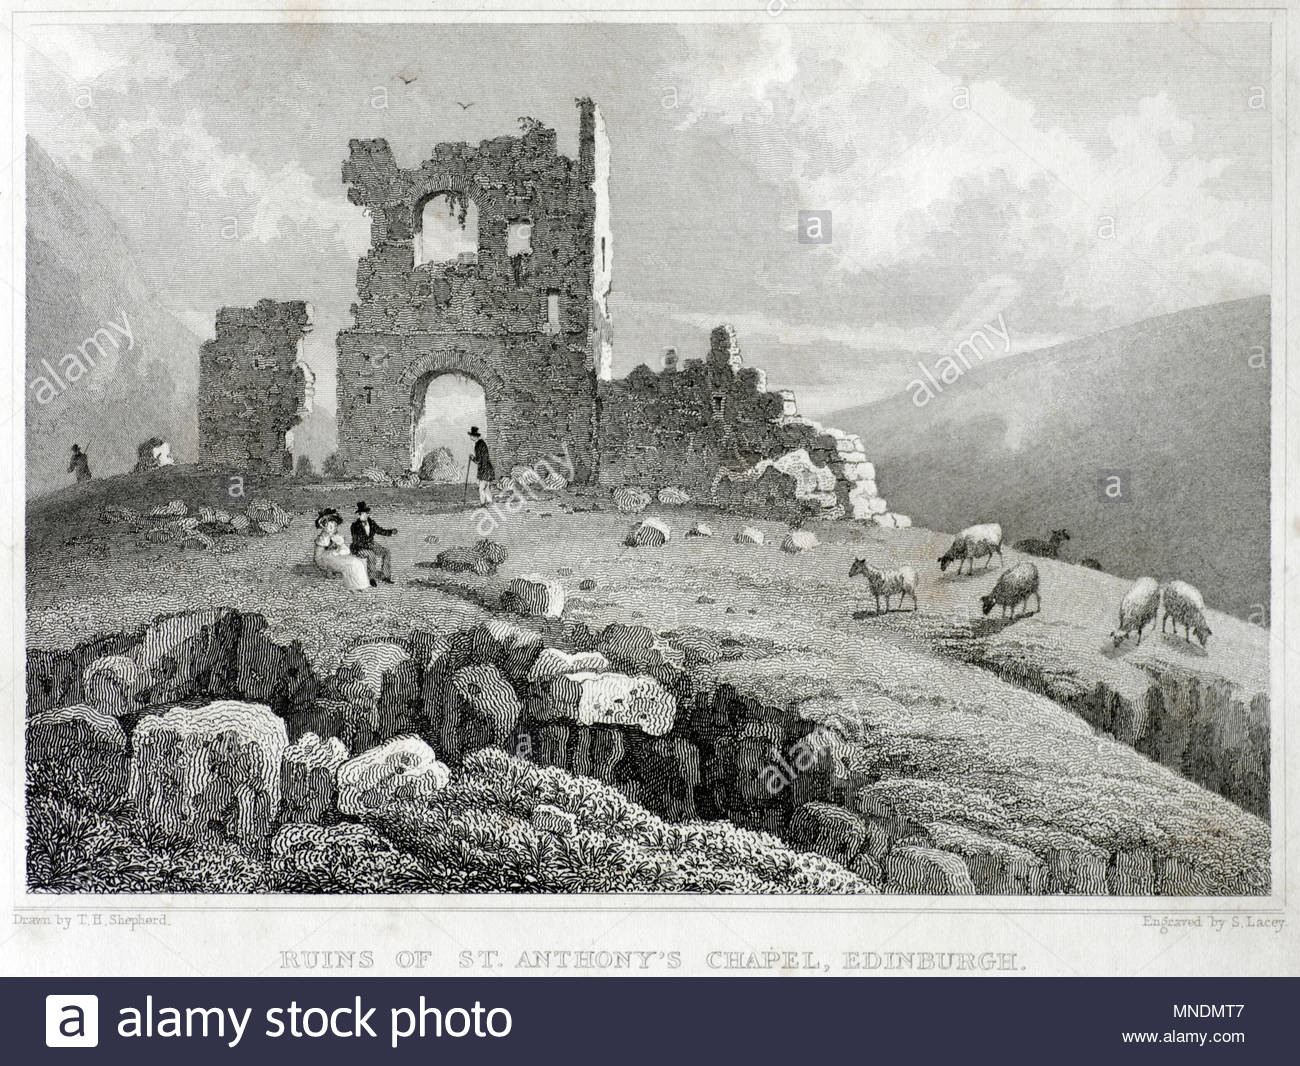 Ruins of St. Anthony's Chapel, Edinburgh, antique engraving from 1829 Stock Photo